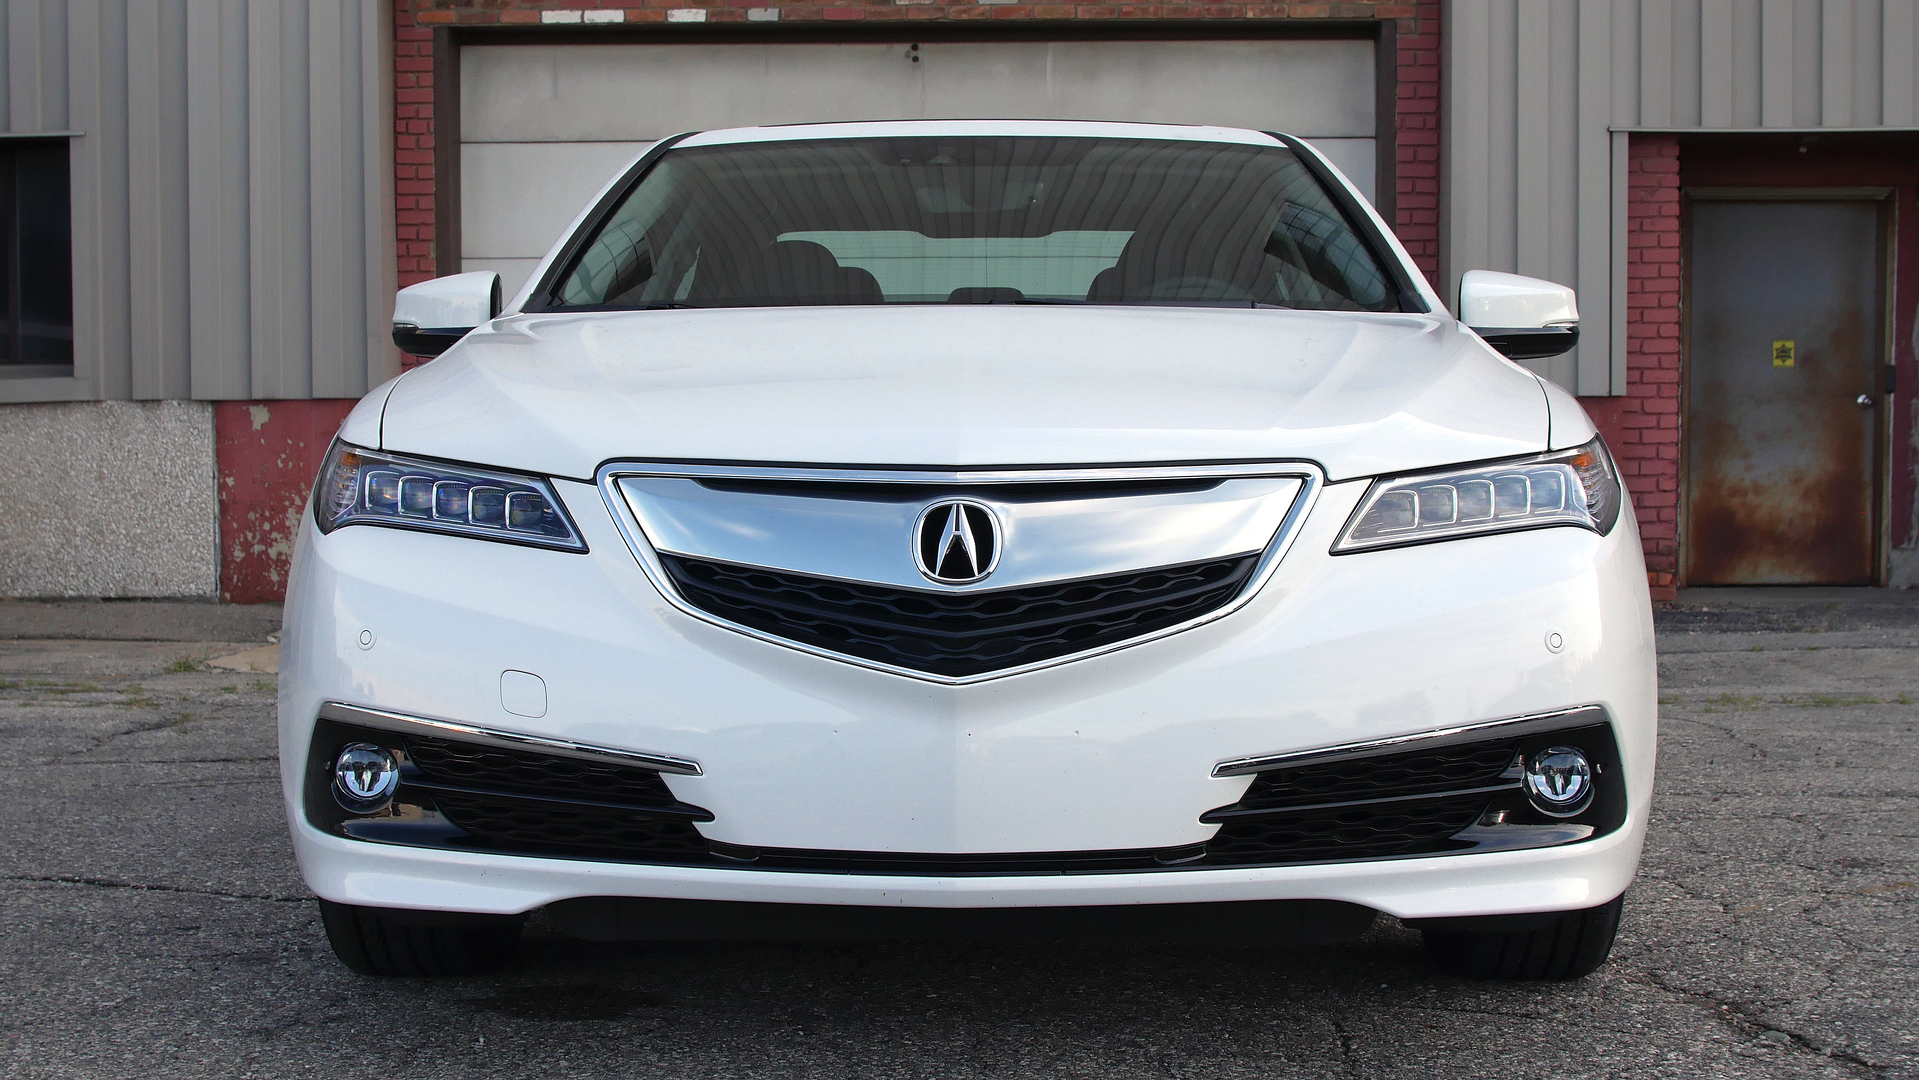 Review: 2017 Acura TLX